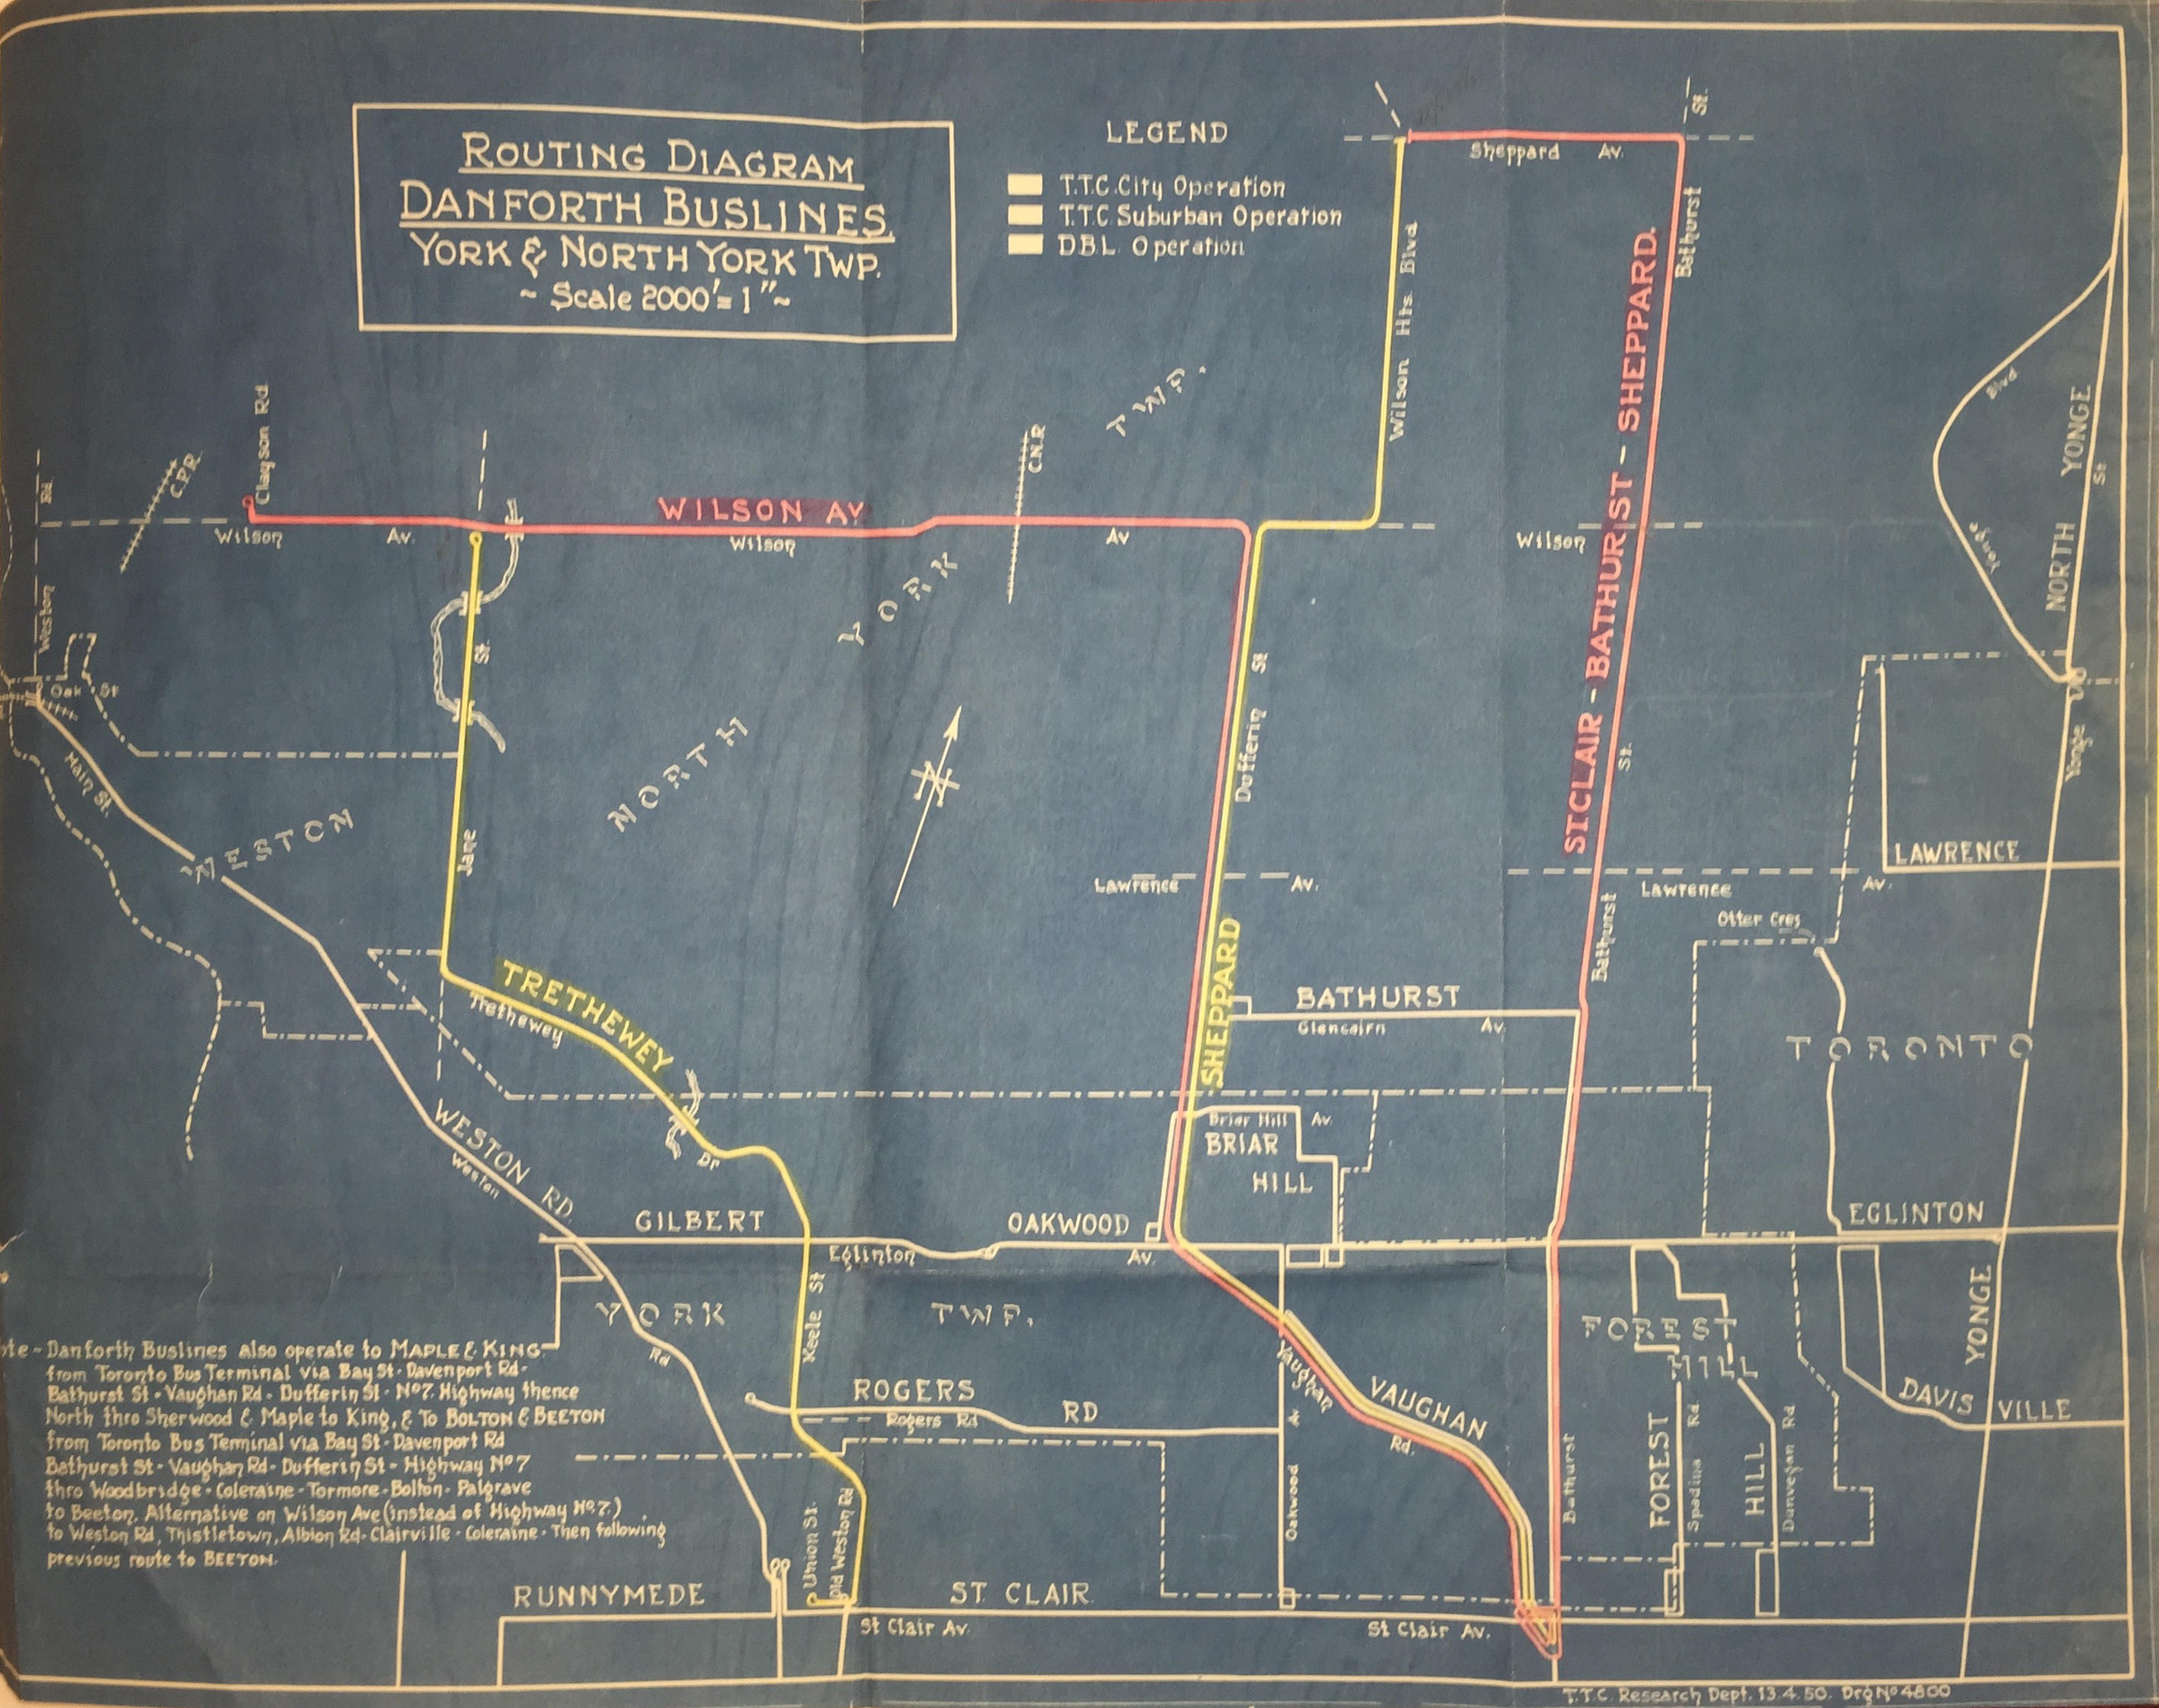 Torontos Forgotten Bus Networks br A Brief History of the non